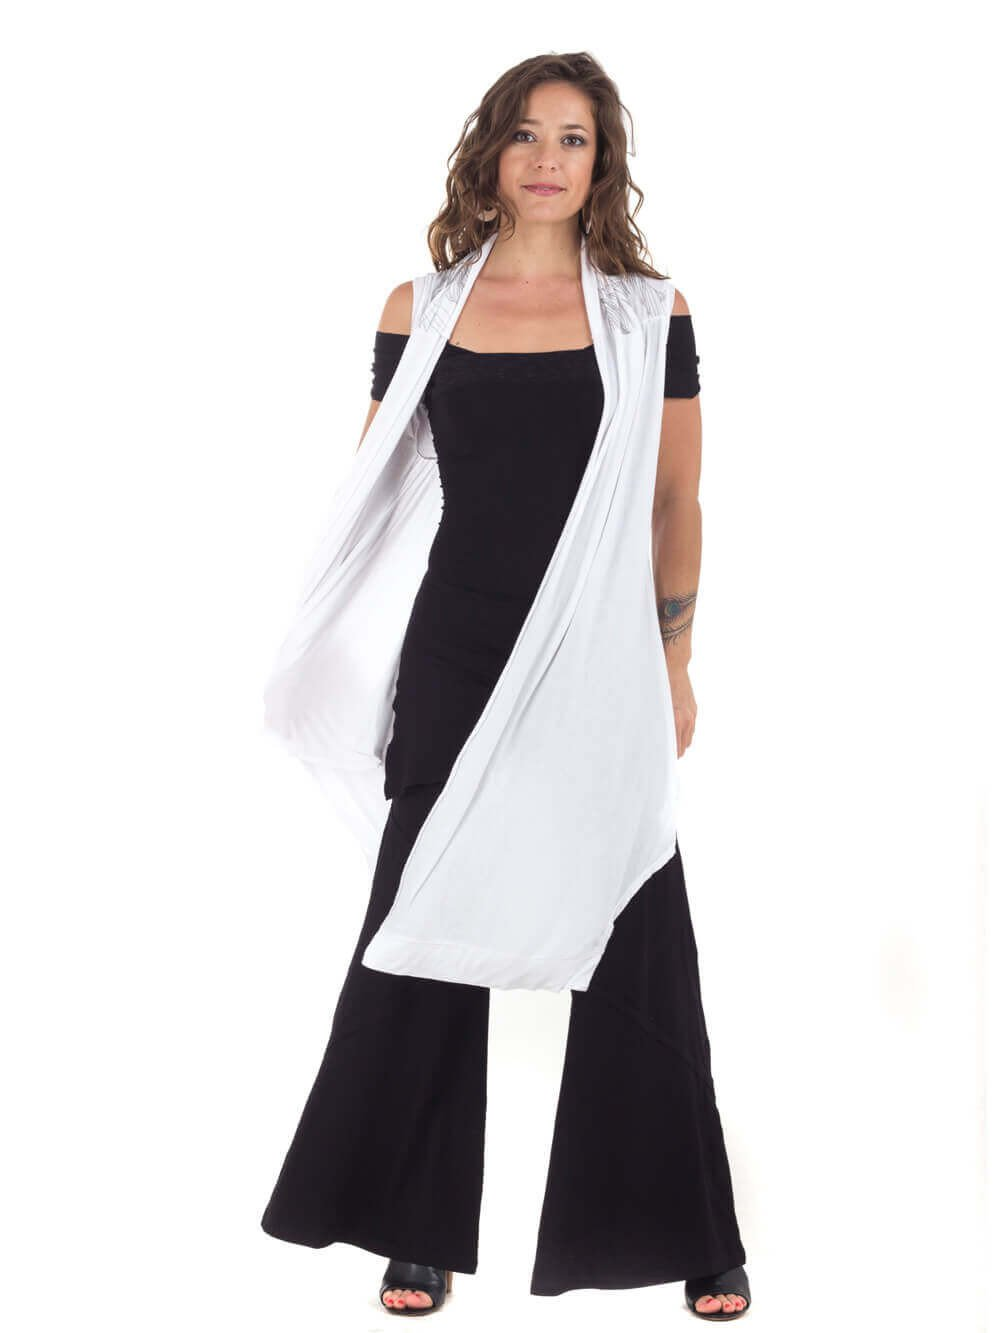 Womens Rayon Jersey Flow Vest in White with Ballet Top in Black and Rayon Jersey Wide Leg Panel Pants in Black